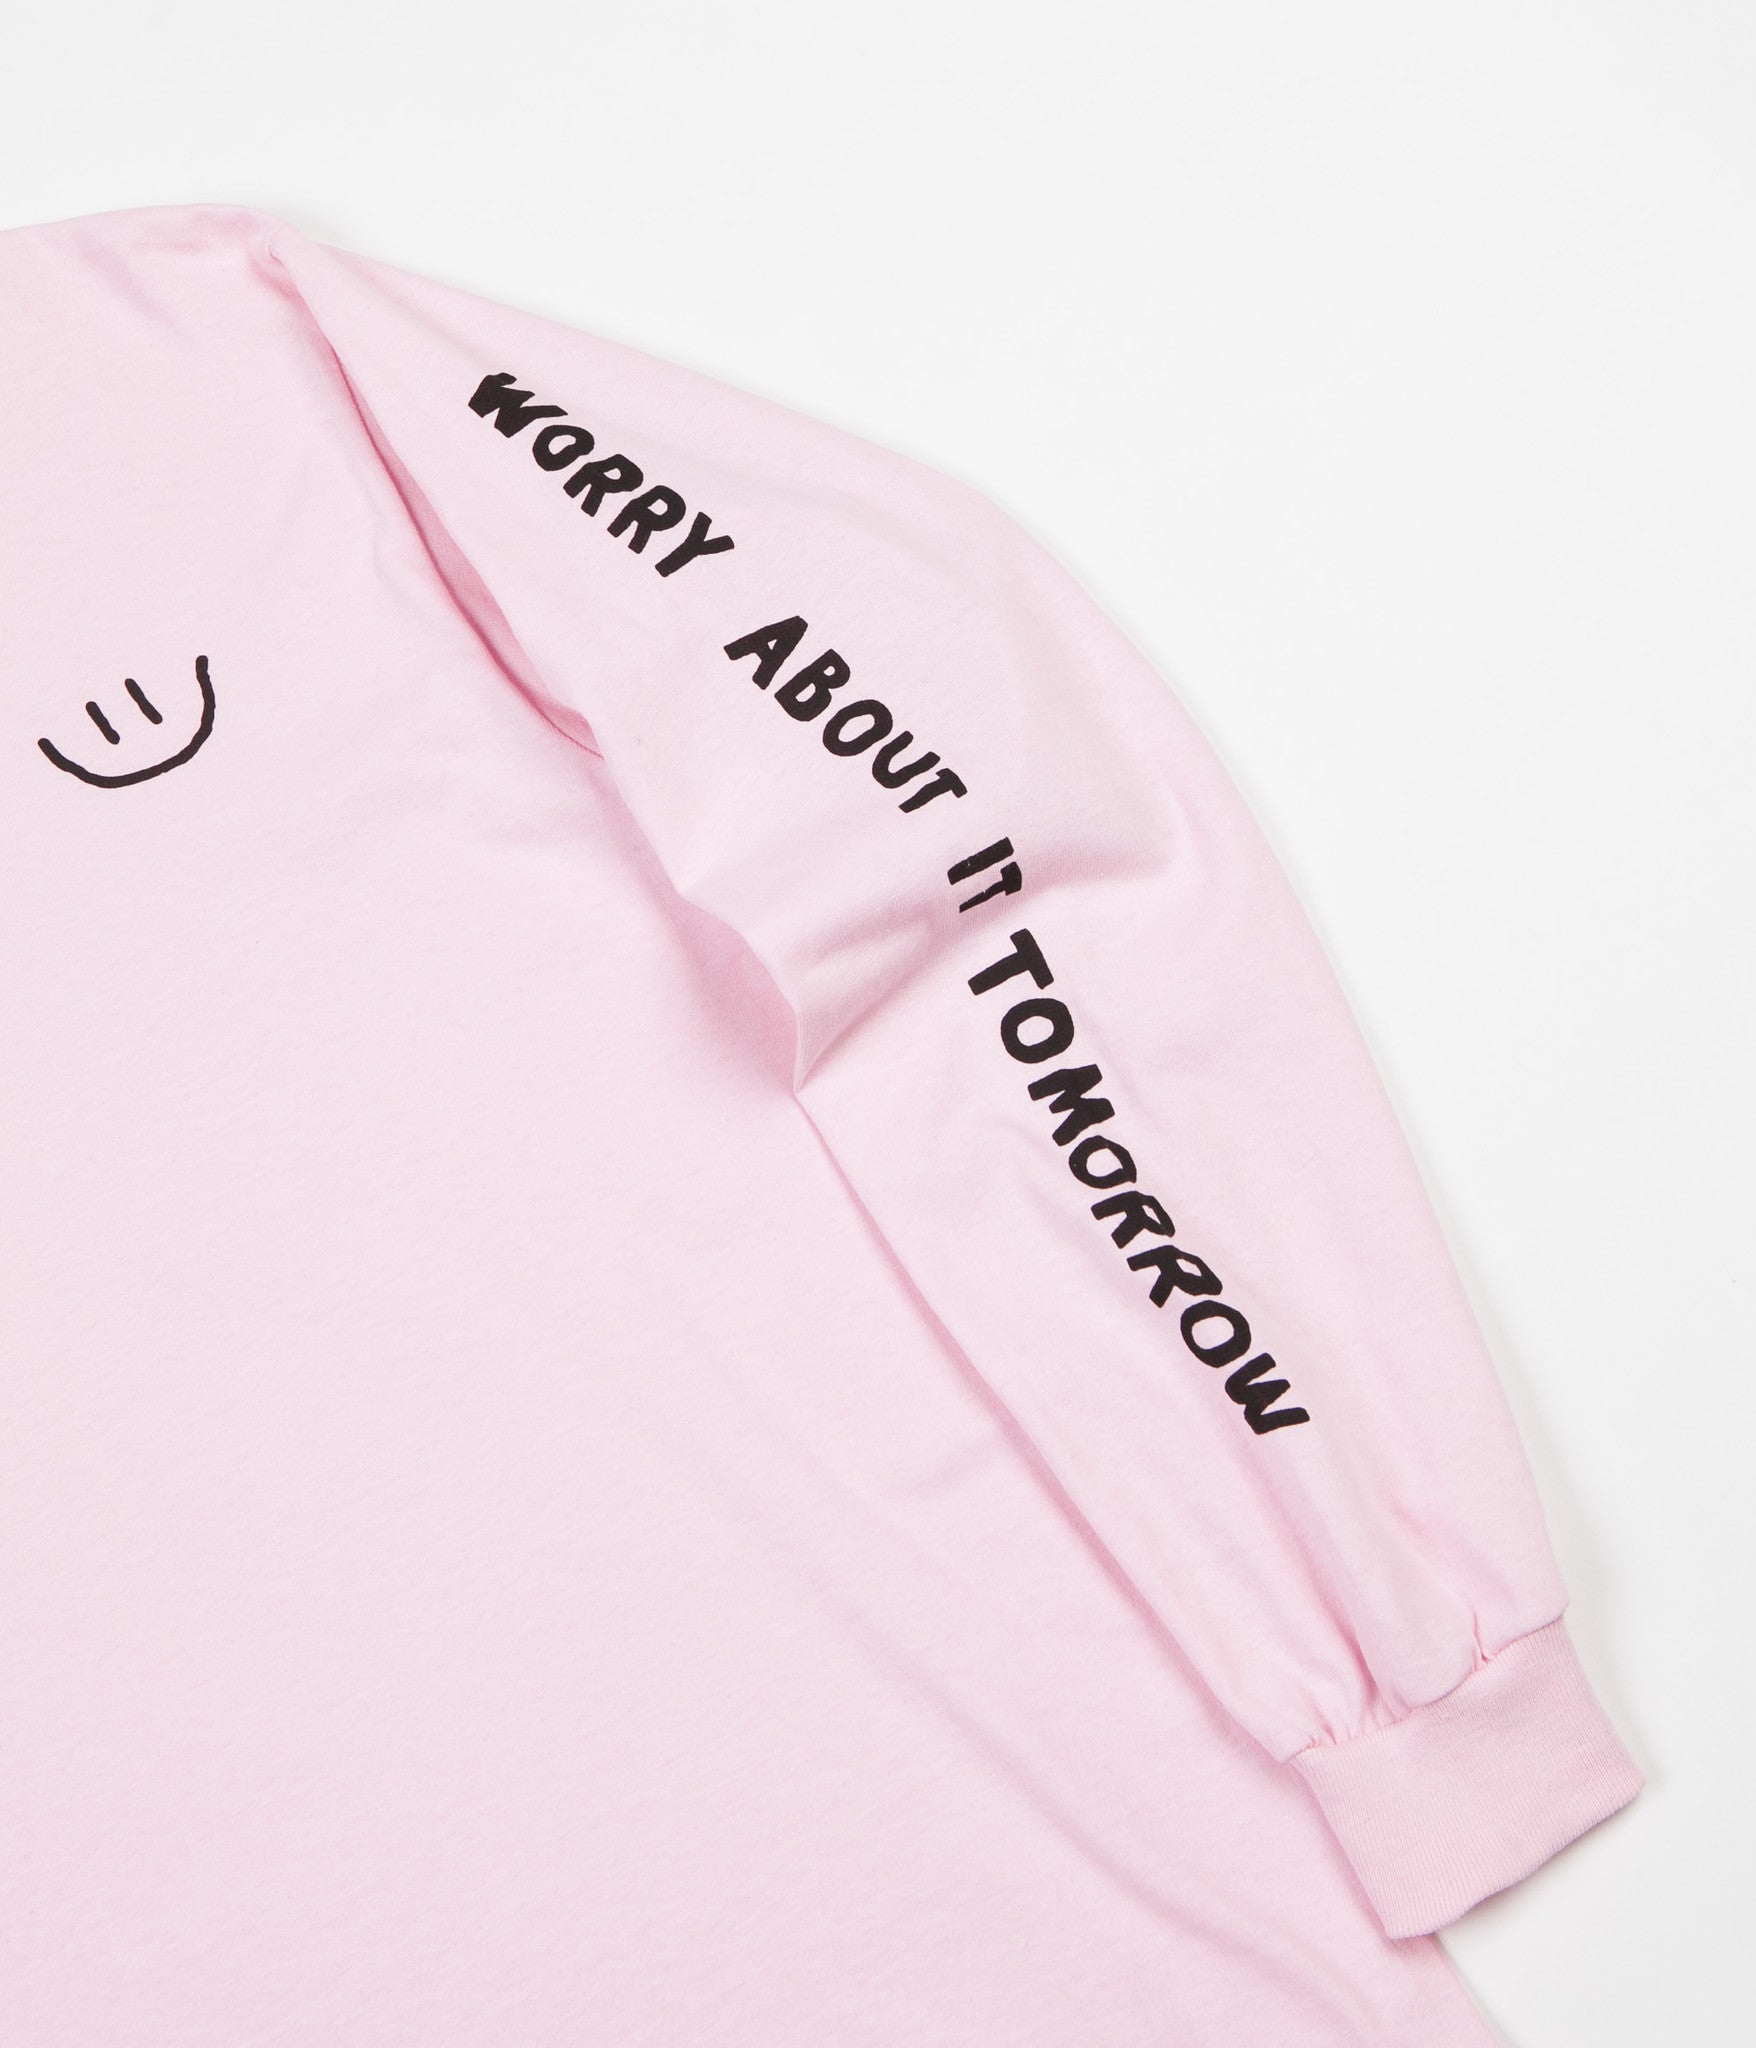 The Quiet Life Worry Long Sleeve T-Shirt - Pink